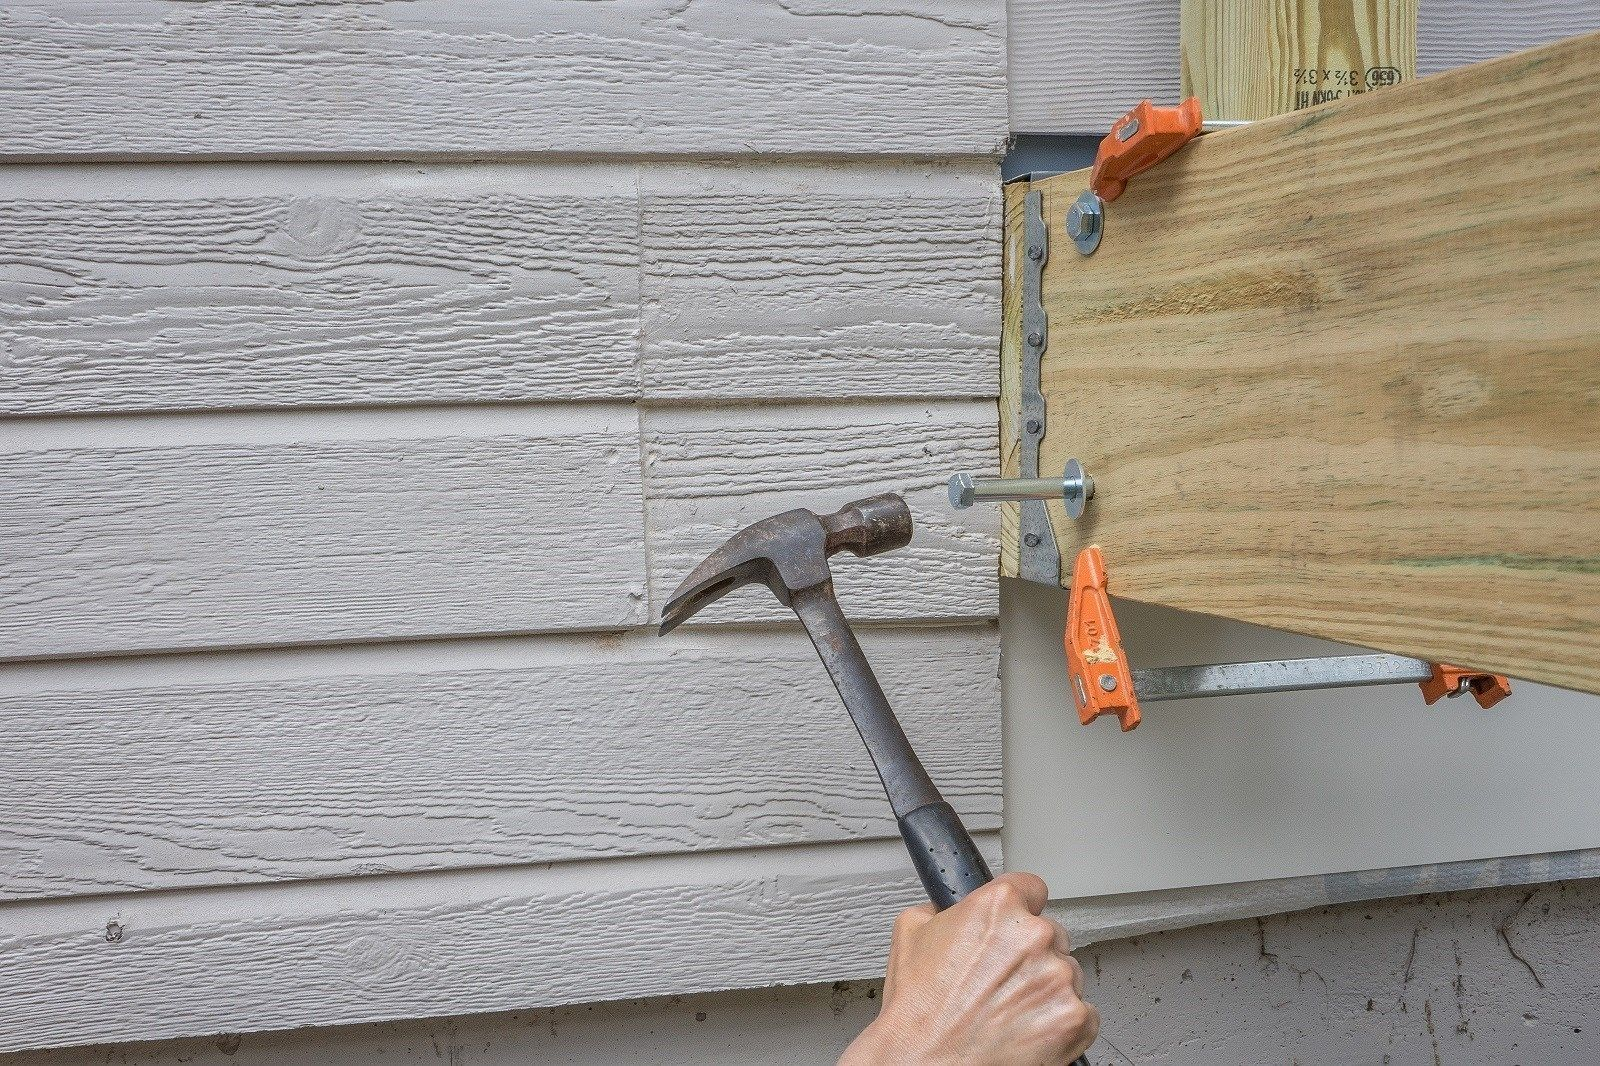 How to install a deck railing - Deck Rail Post Attachment